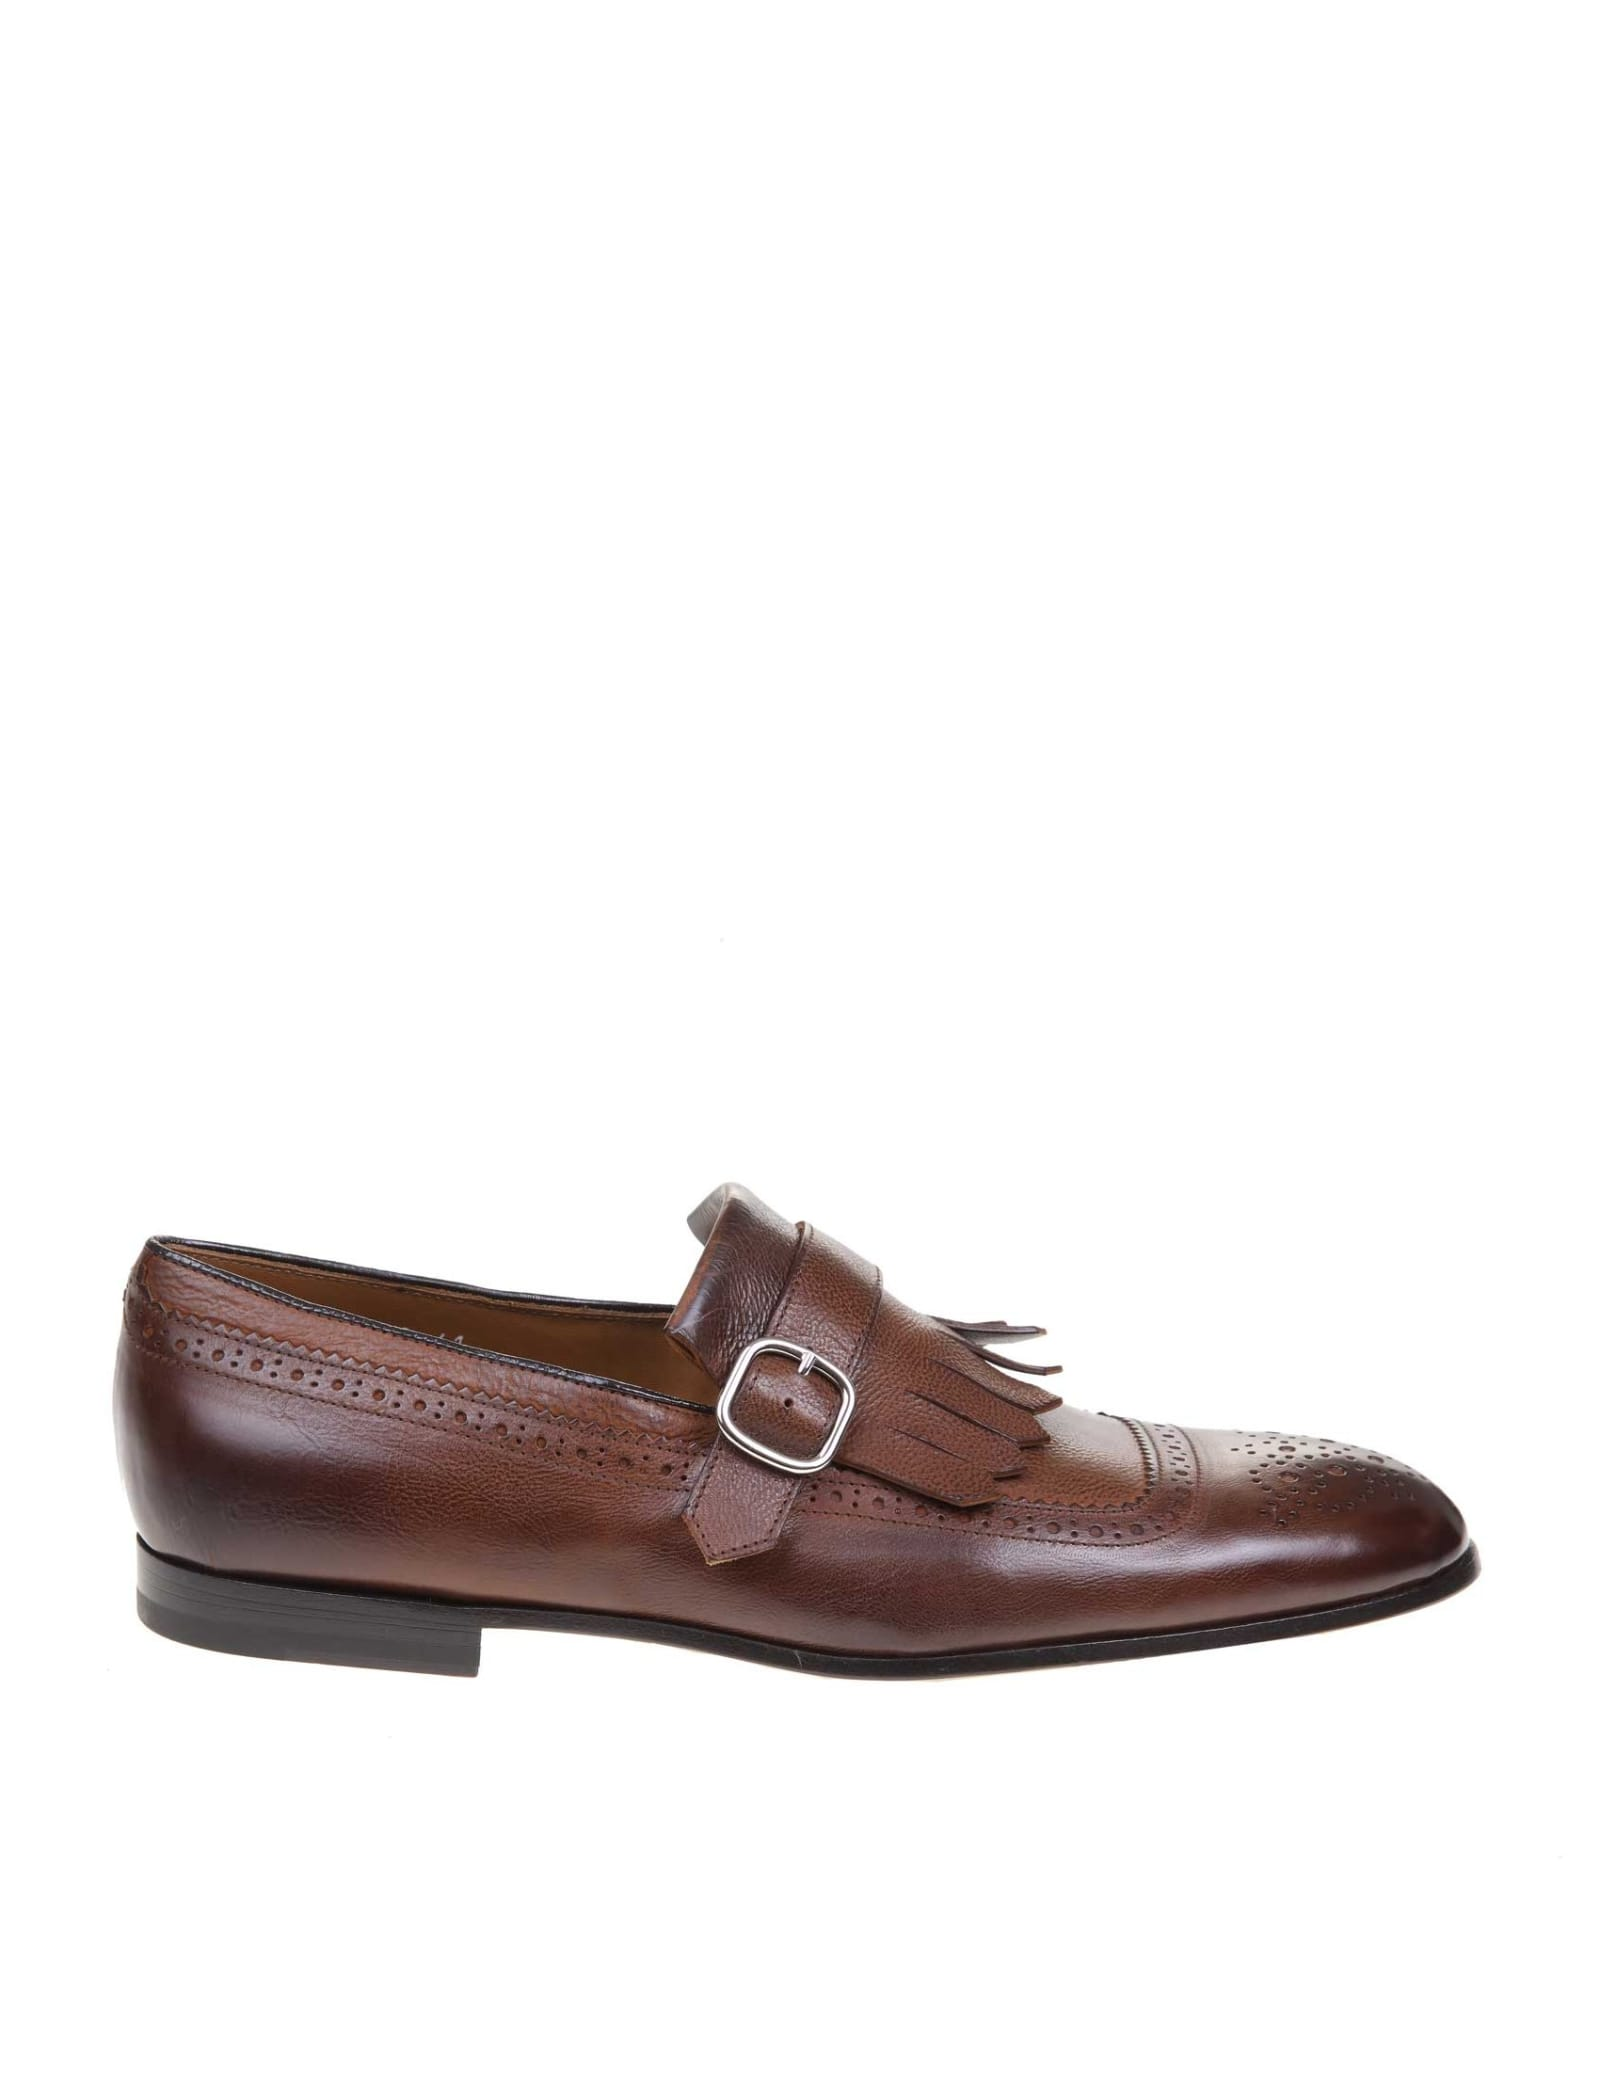 Doucals Moccasin In Leather With Buckle Color Brown